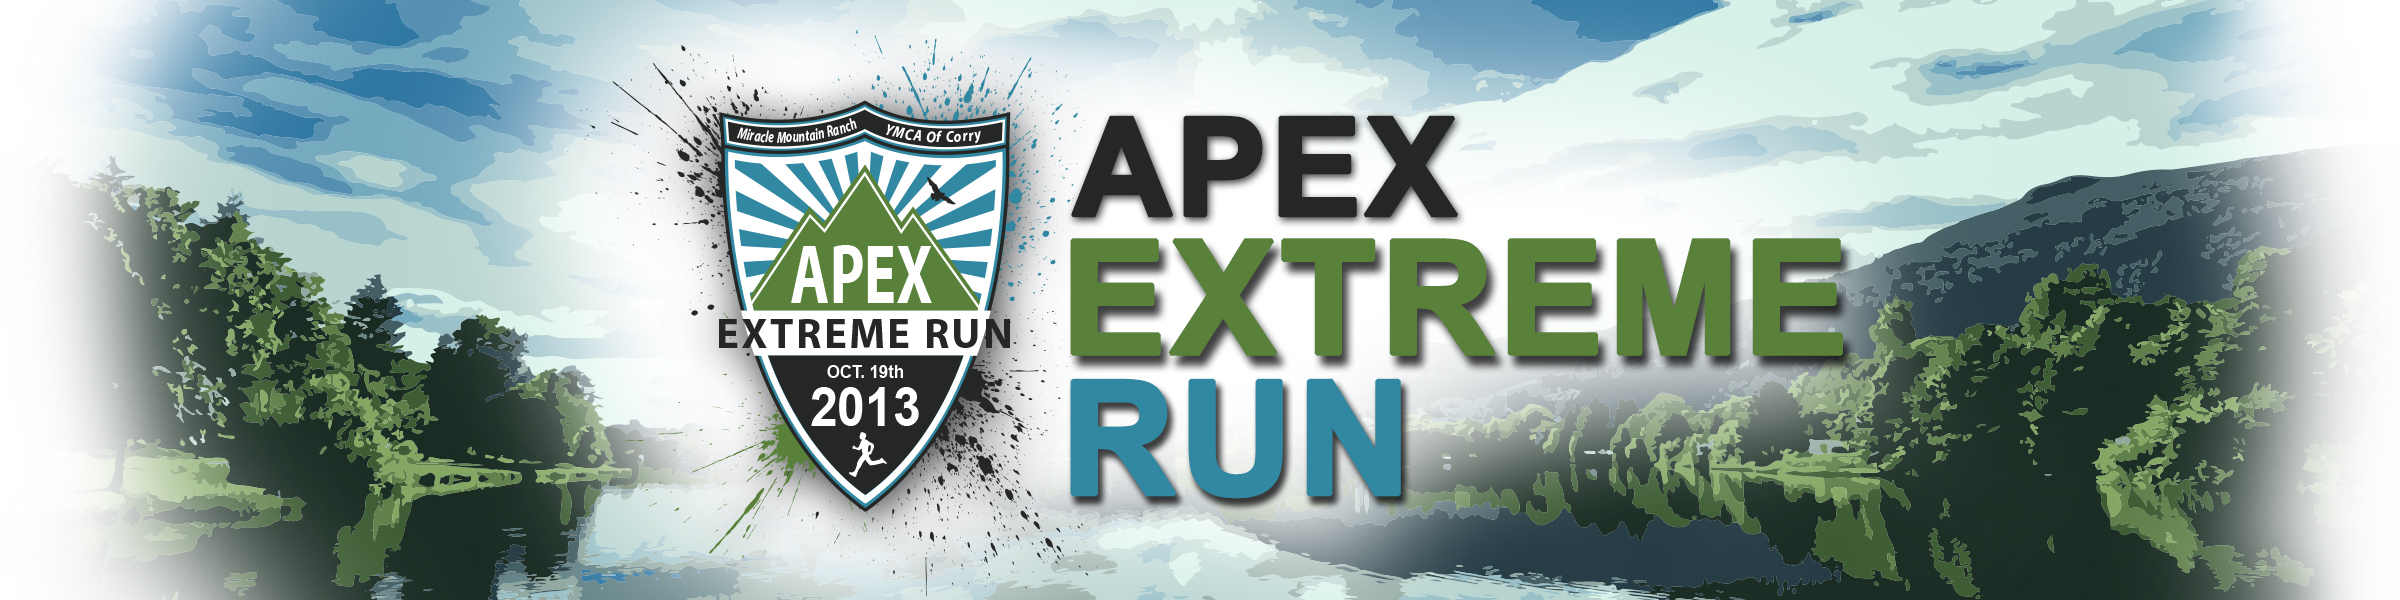 APEX Run - A true adventure run/race!